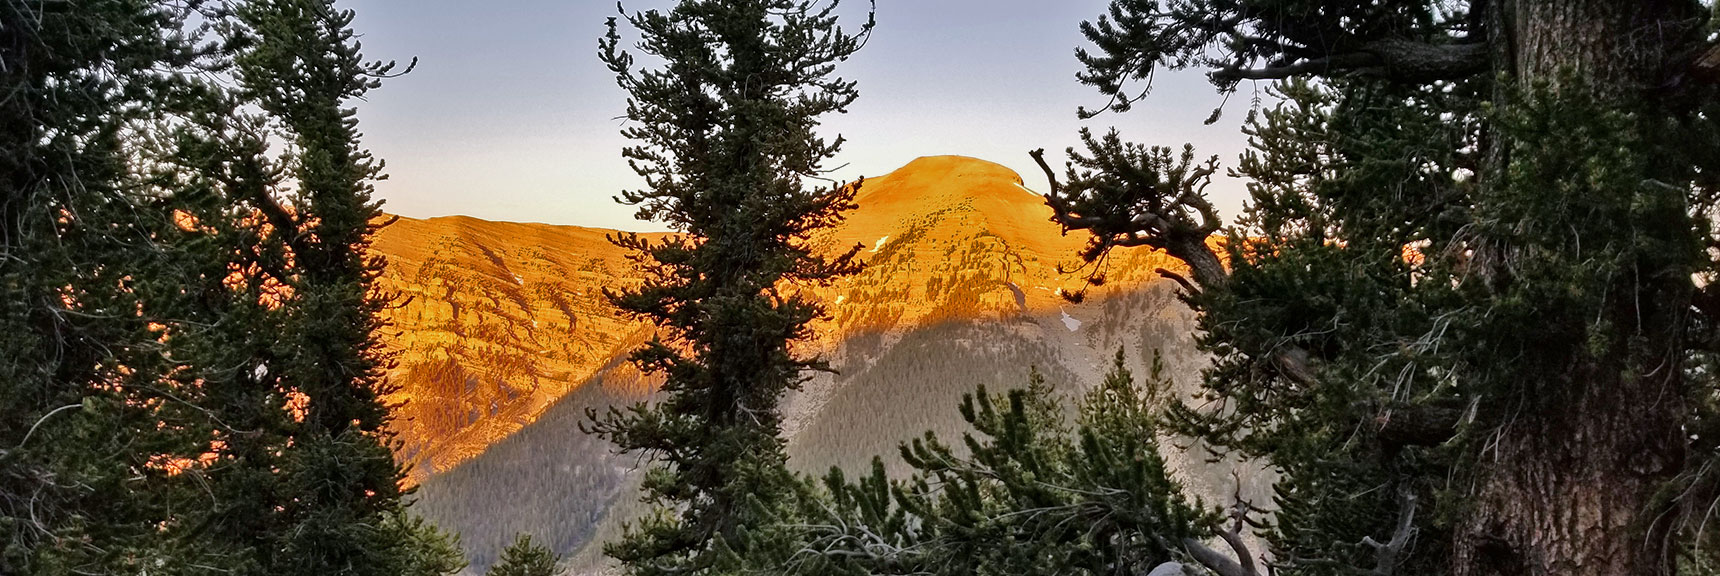 Sunrise View of Charleston Peak from the North Loop Trail | Six Peak Circuit Adventure in the Spring Mountains, Nevada